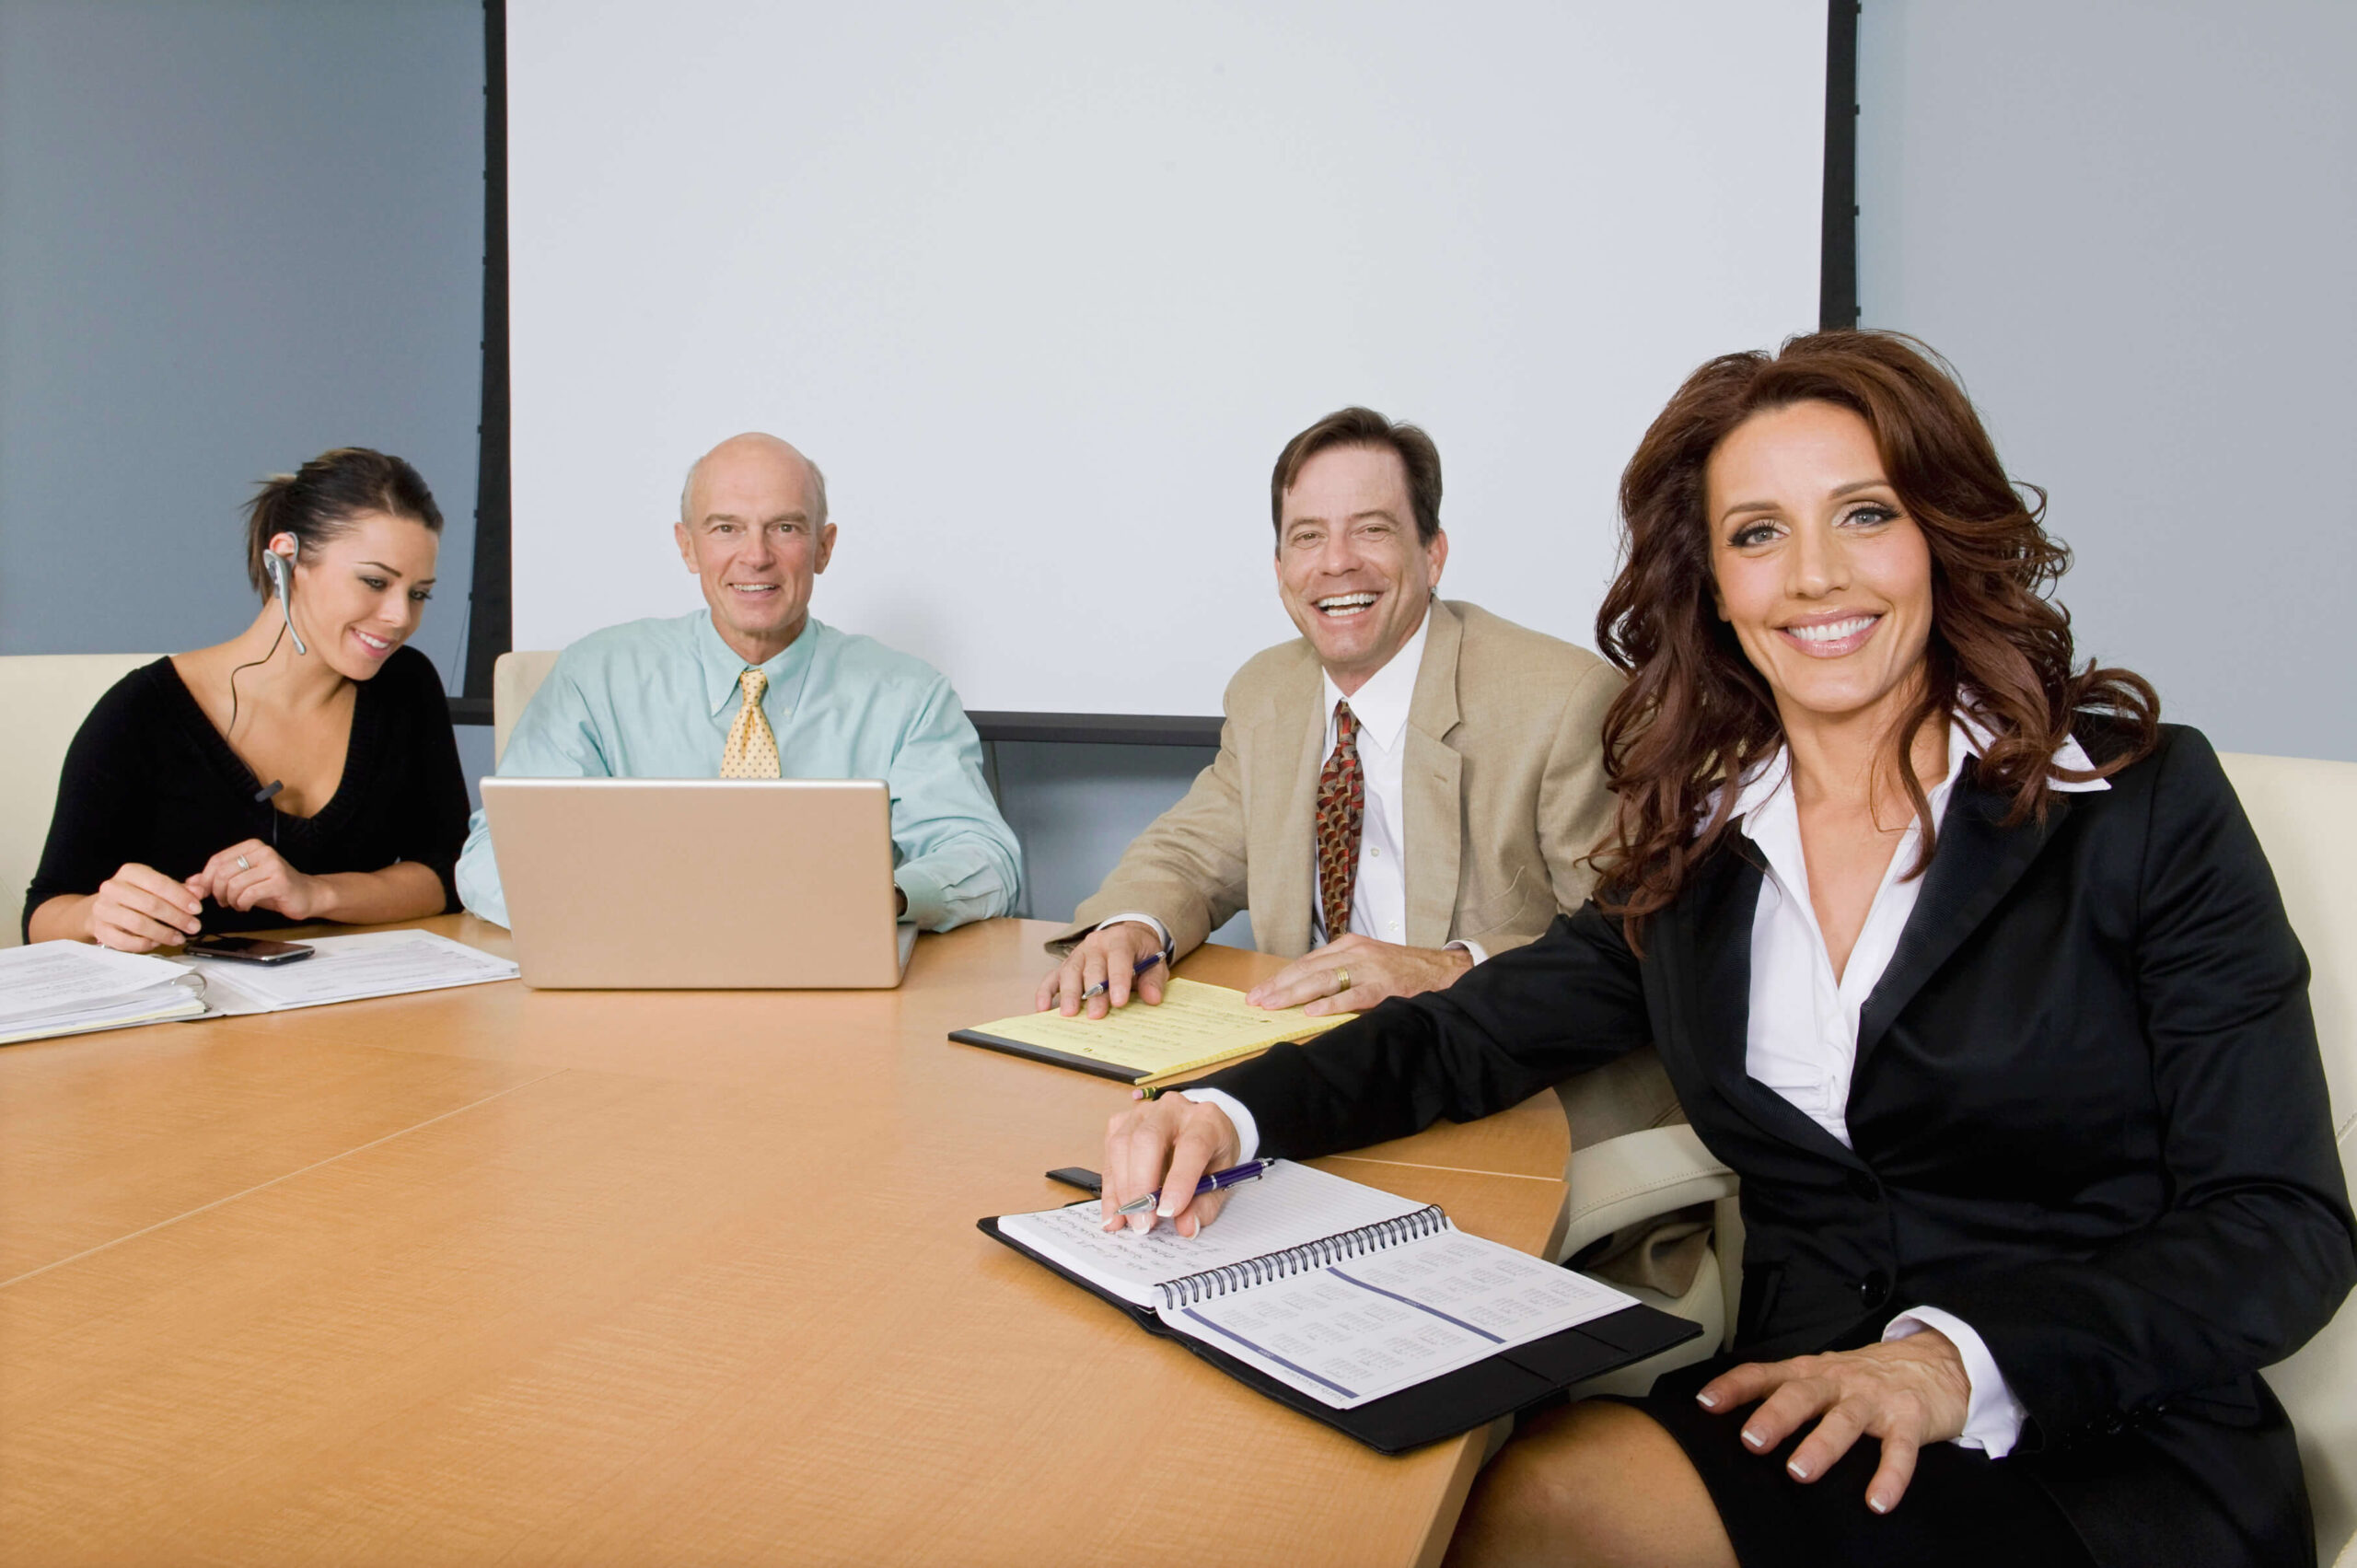 Top 3 tips for Selecting the right candidate